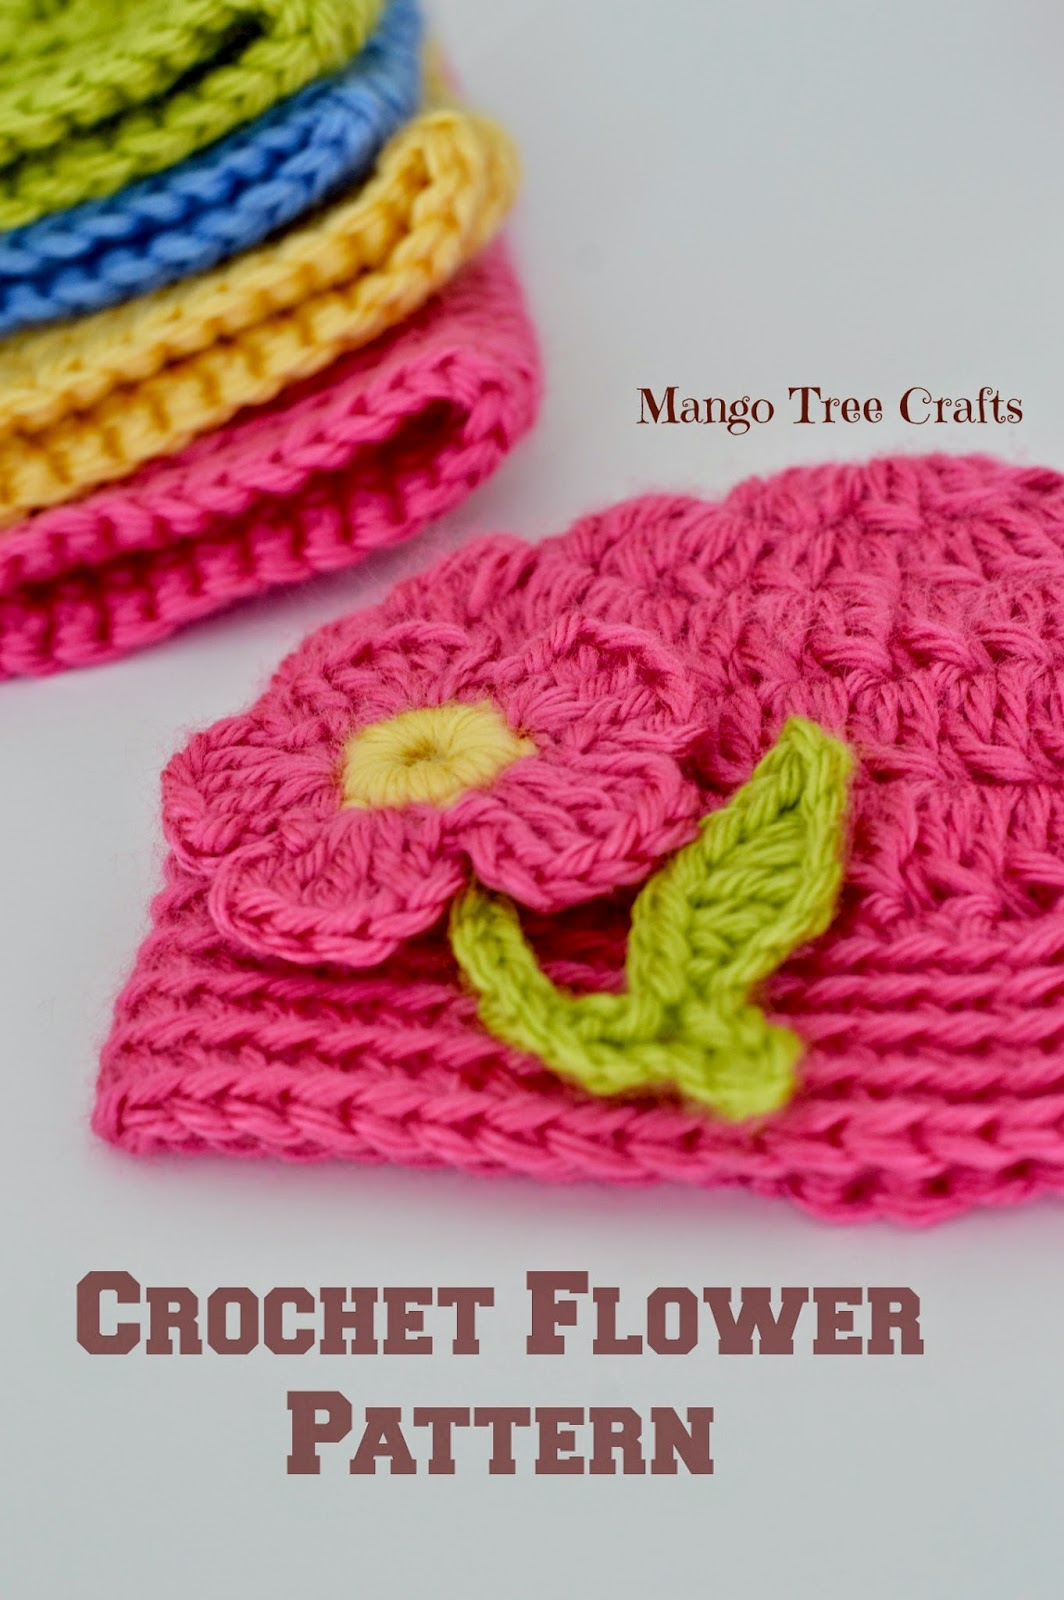 Crochet Flower Of Life Pattern : Mango Tree Crafts: Free Crochet Flower Applique Pattern